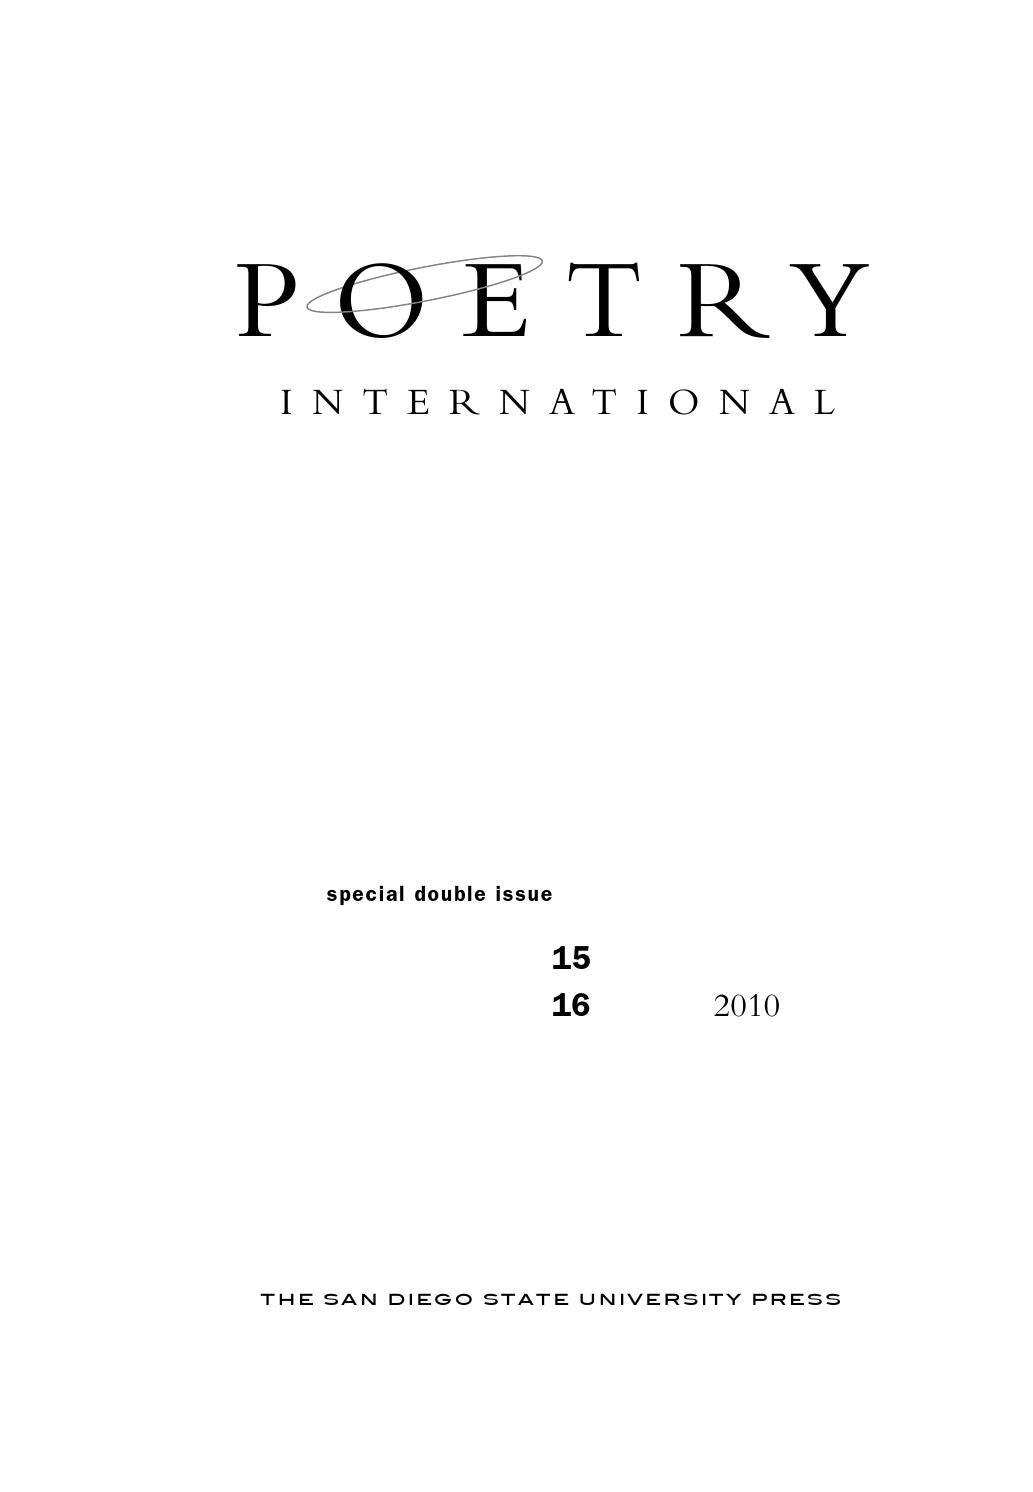 Pi Issue 15 And 16 By Poetry International Issuu